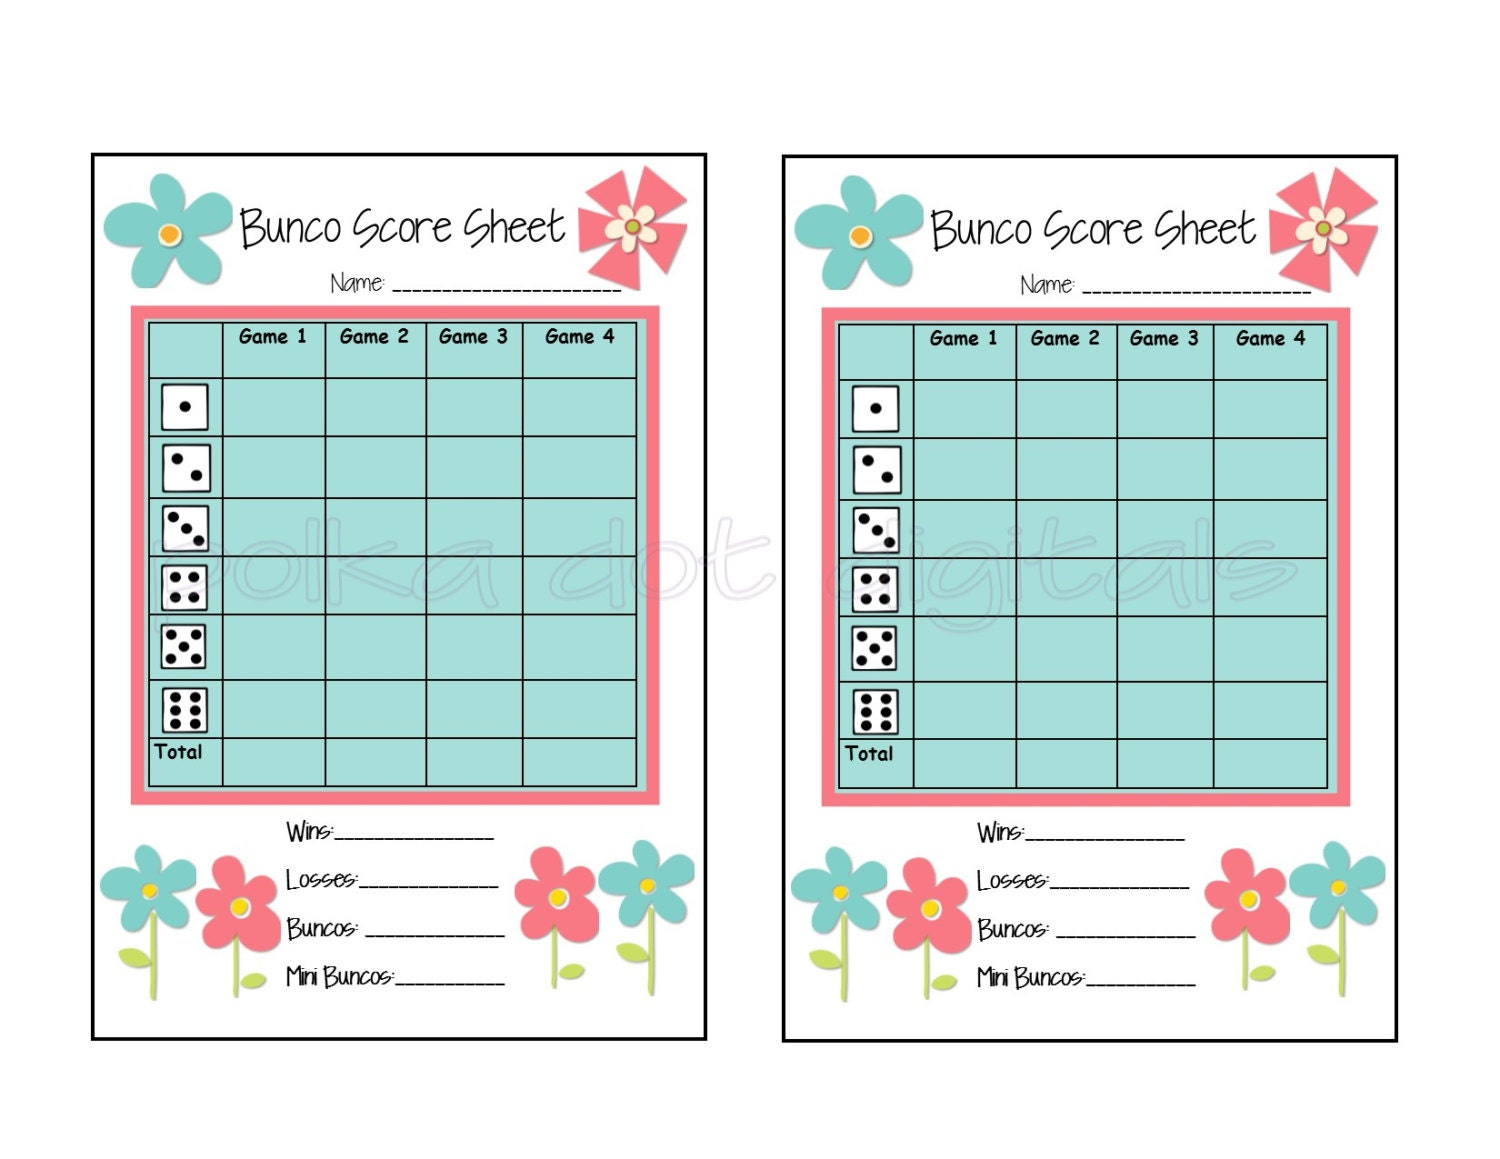 photo about Cute Bunco Score Sheets Printable named 100+ Bunco Scoresheet yasminroohi